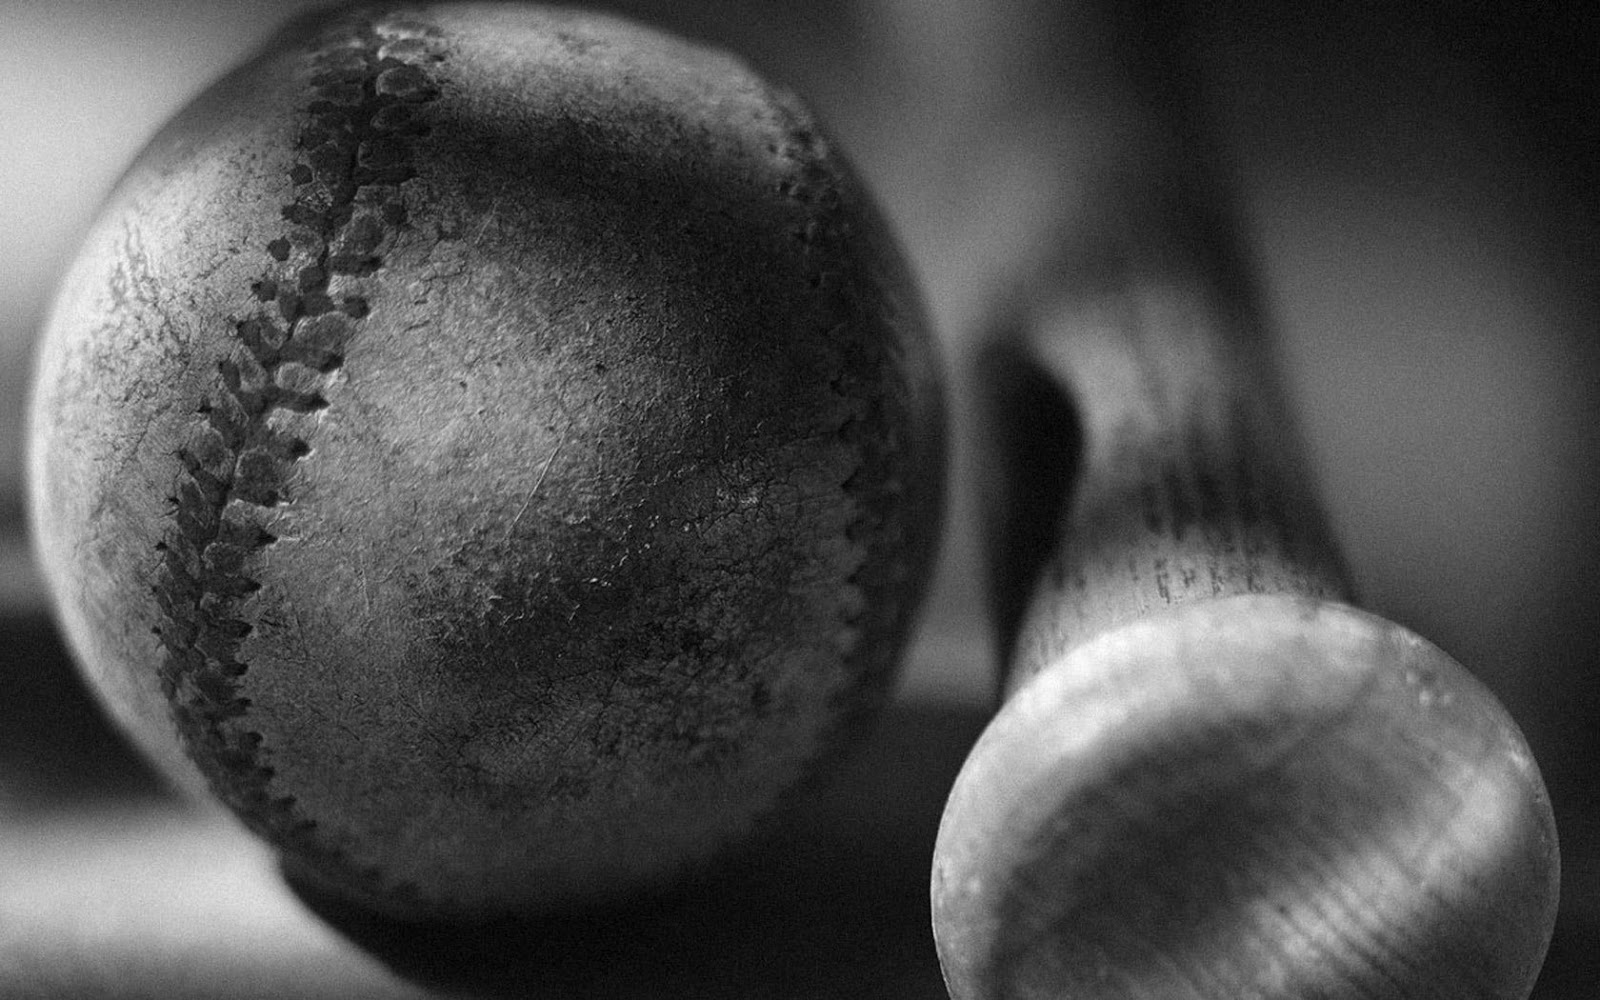 Baseball bat and ball black and white HD photos